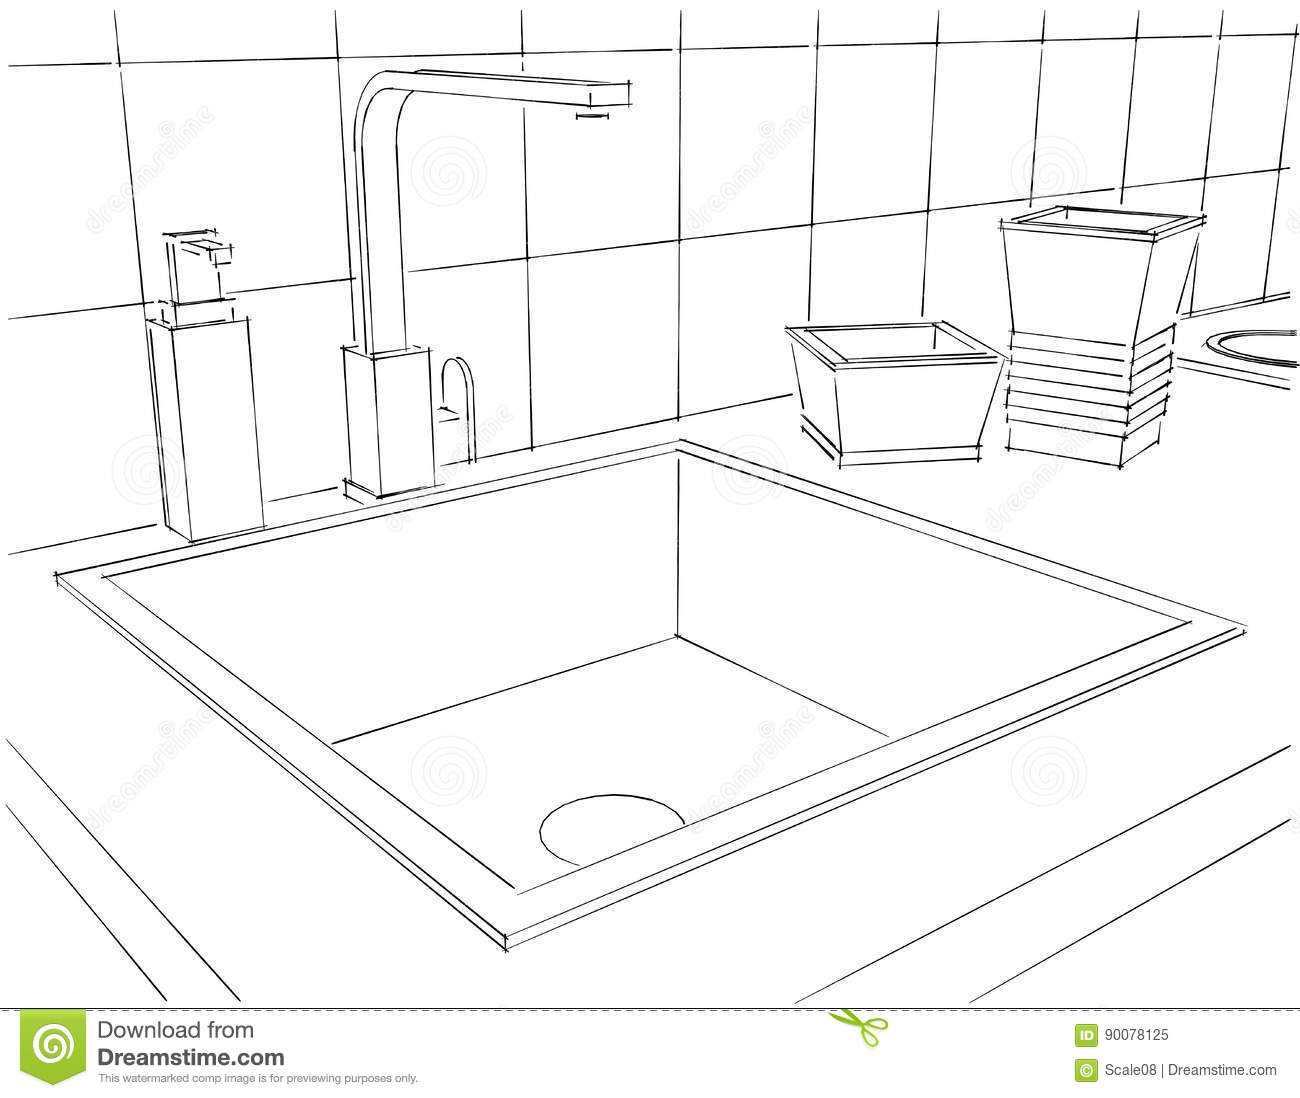 The Kitchen Sink Art Drawing Sketch Sketchbook By: Sketch Layout Drawing Of 3d Modern Corner Kitchen Interior